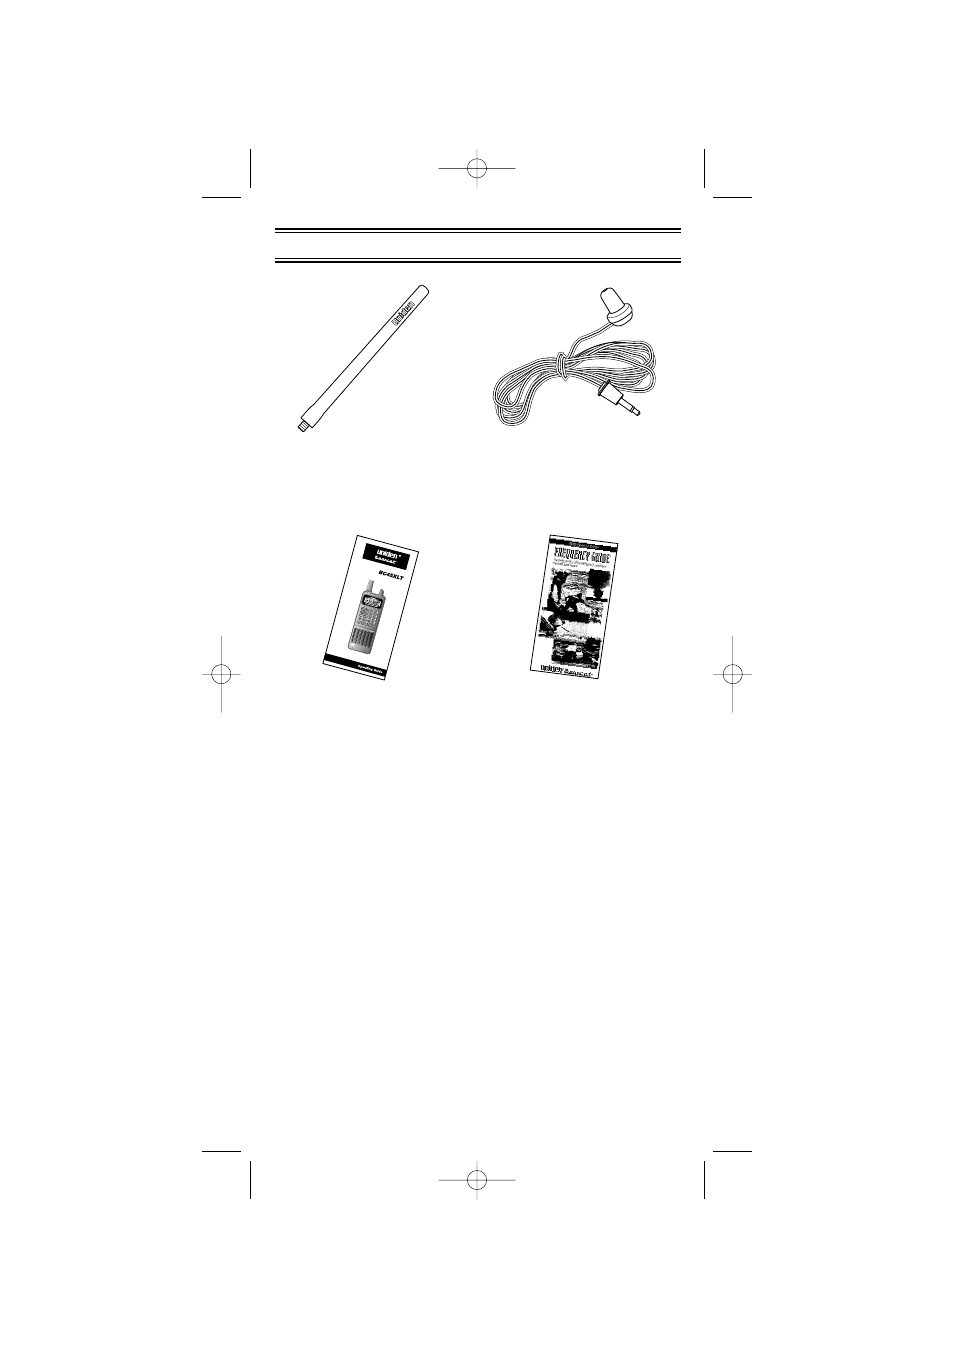 accessories and replacement parts uniden bc45xlt user manual rh manualsdir com Radio Frequency List Energy Frequency Guide